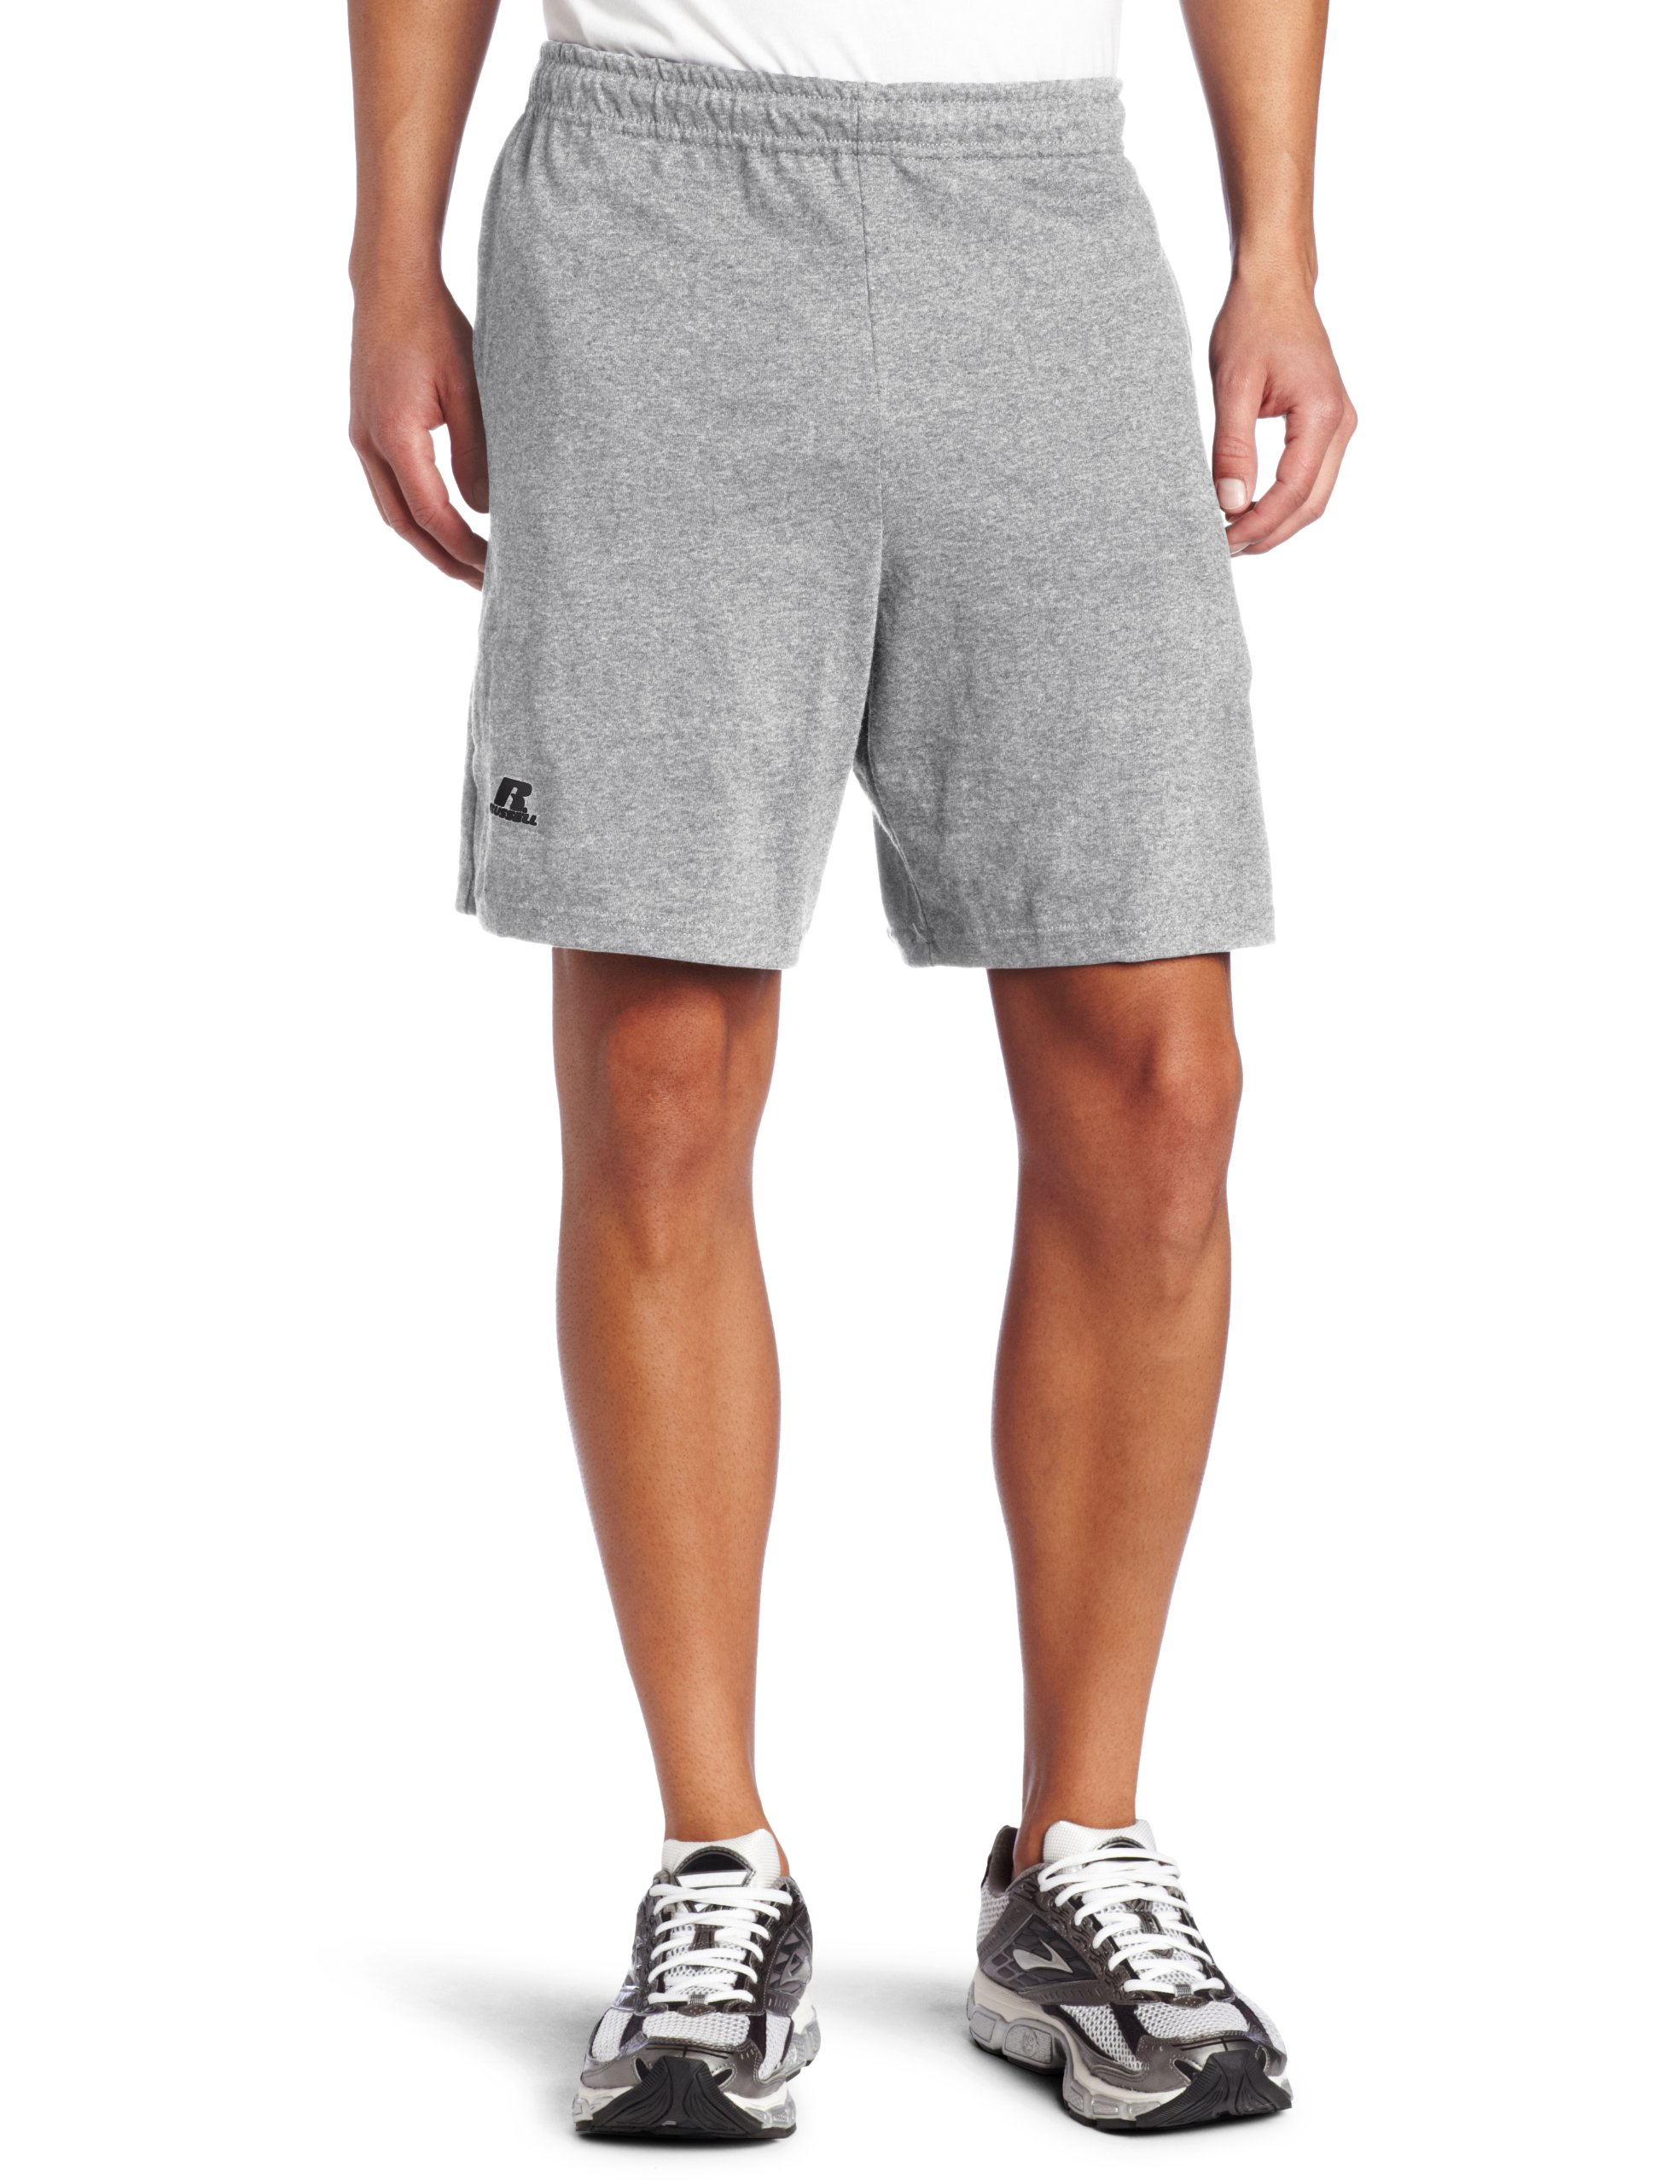 Russell Athletic Men's Cotton Baseline Short with Pockets, Graphite, Large by Russell Athletic